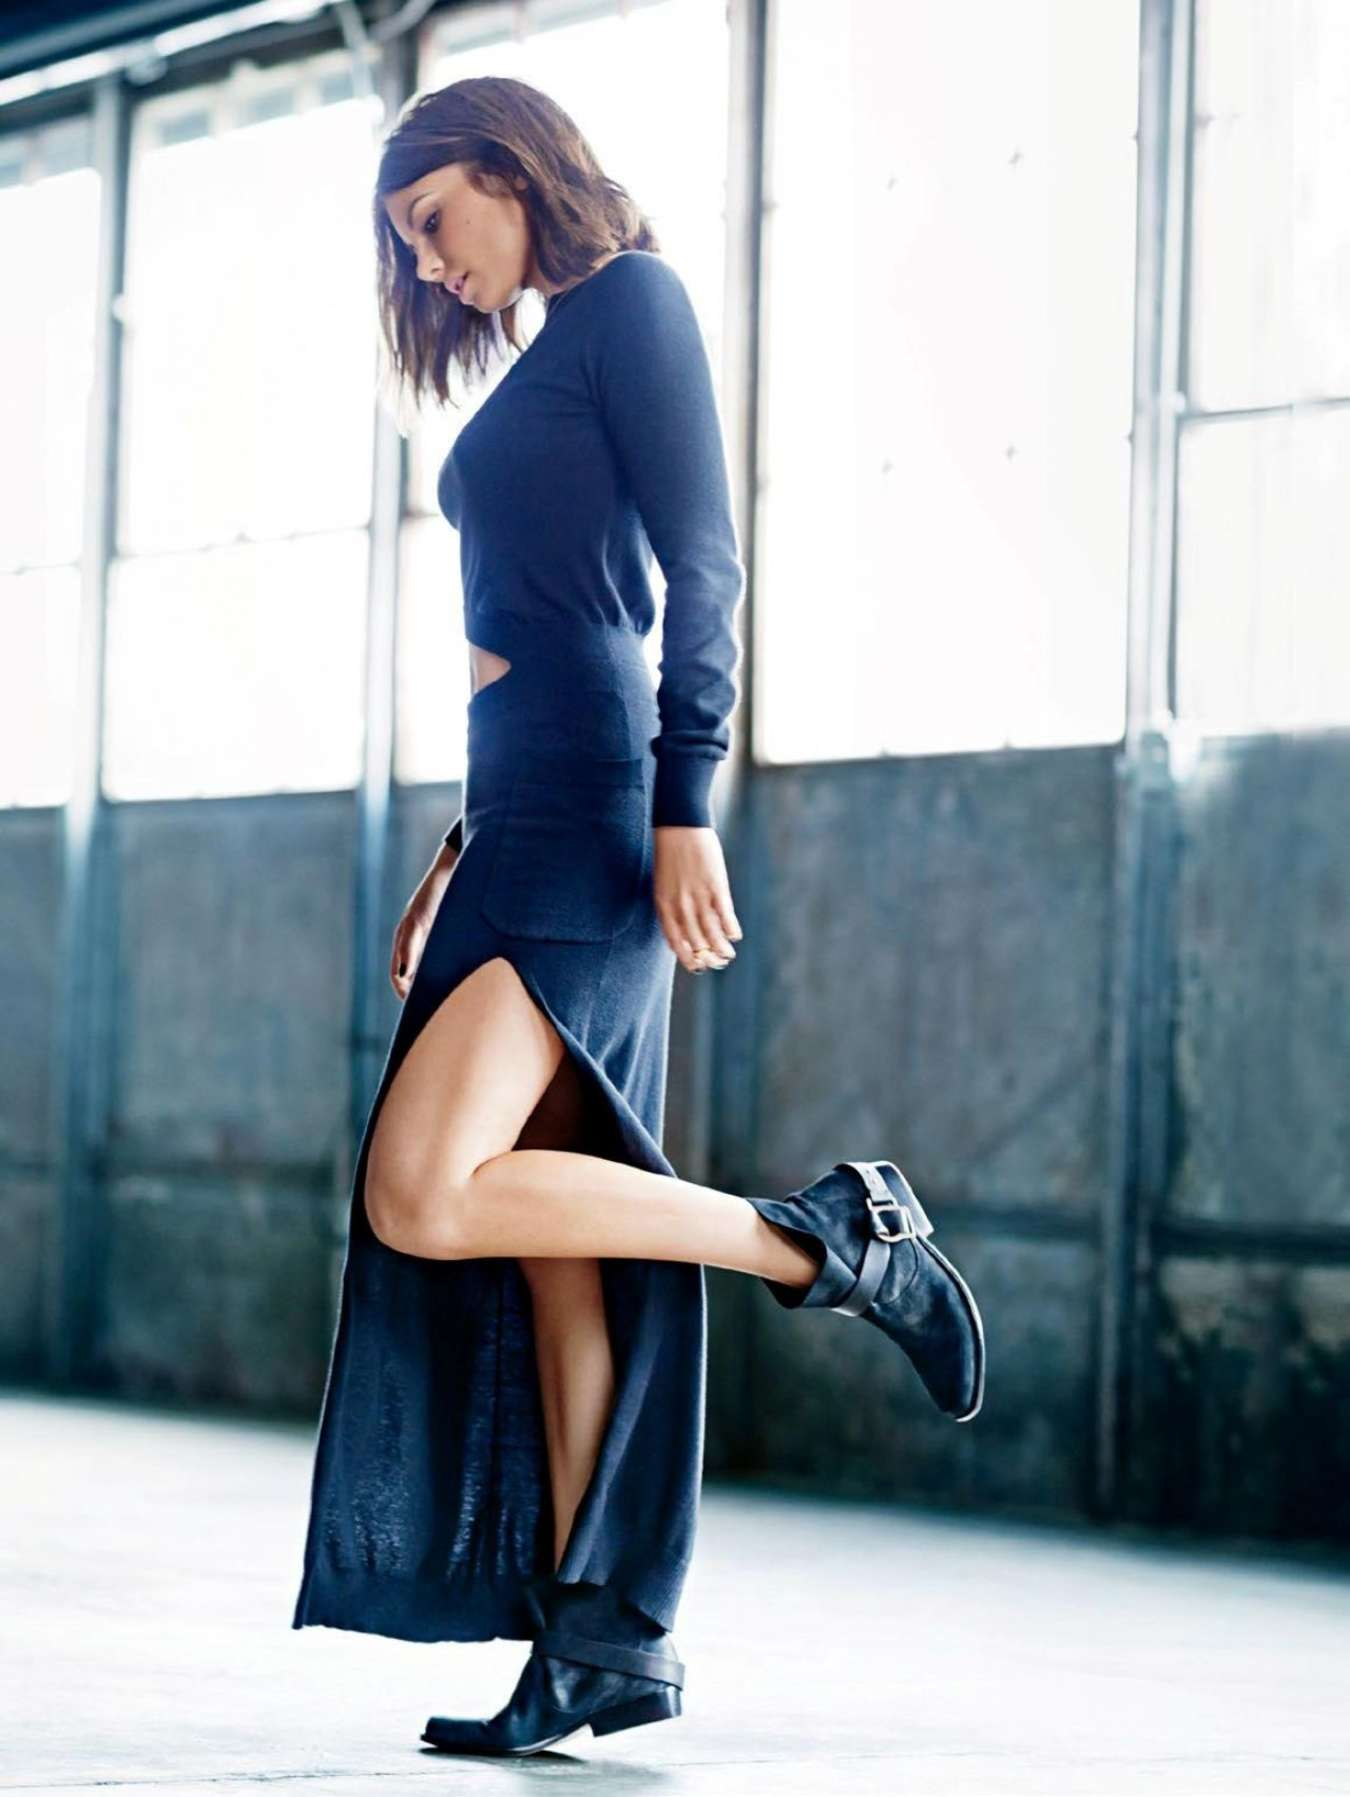 Lauren Cohan for Women's Health Magazine December Issue